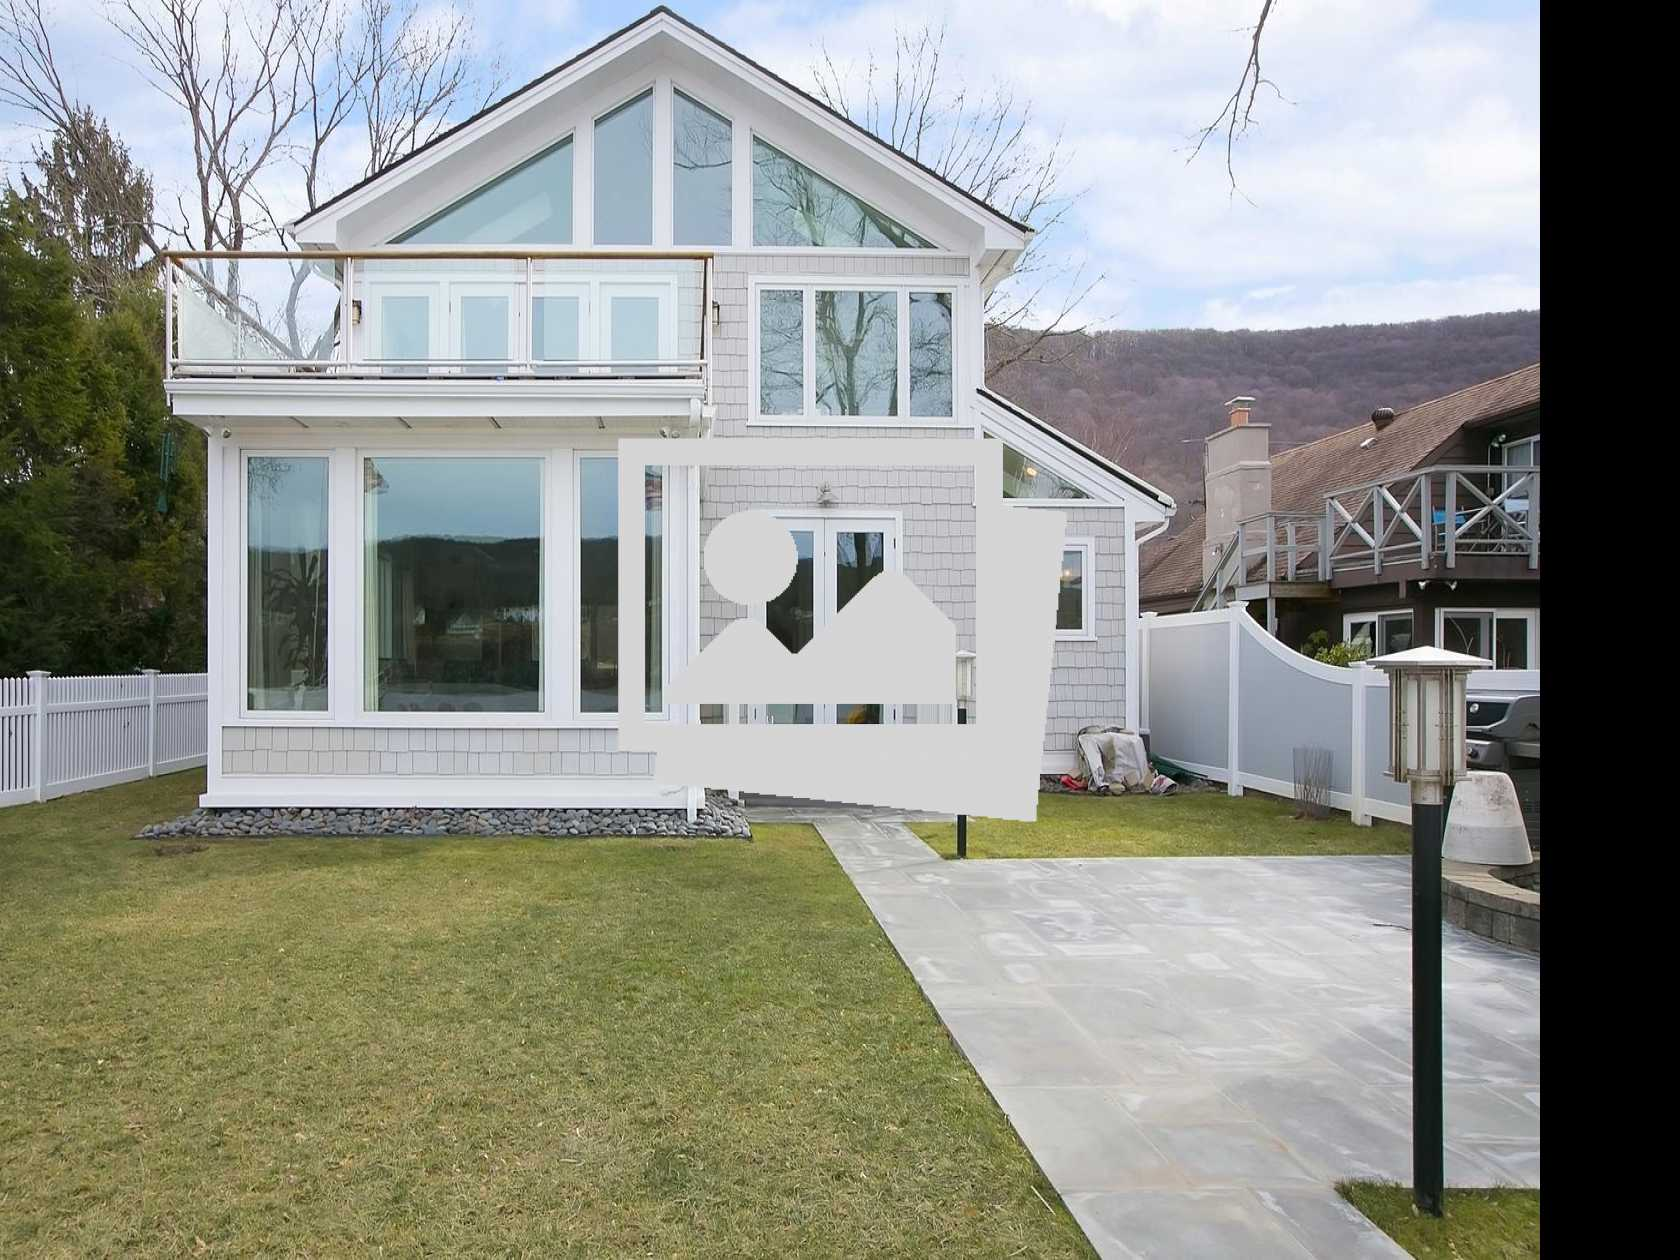 House Browse :: Garrison, NY Property on the Hudson Comes Fully Loaded!